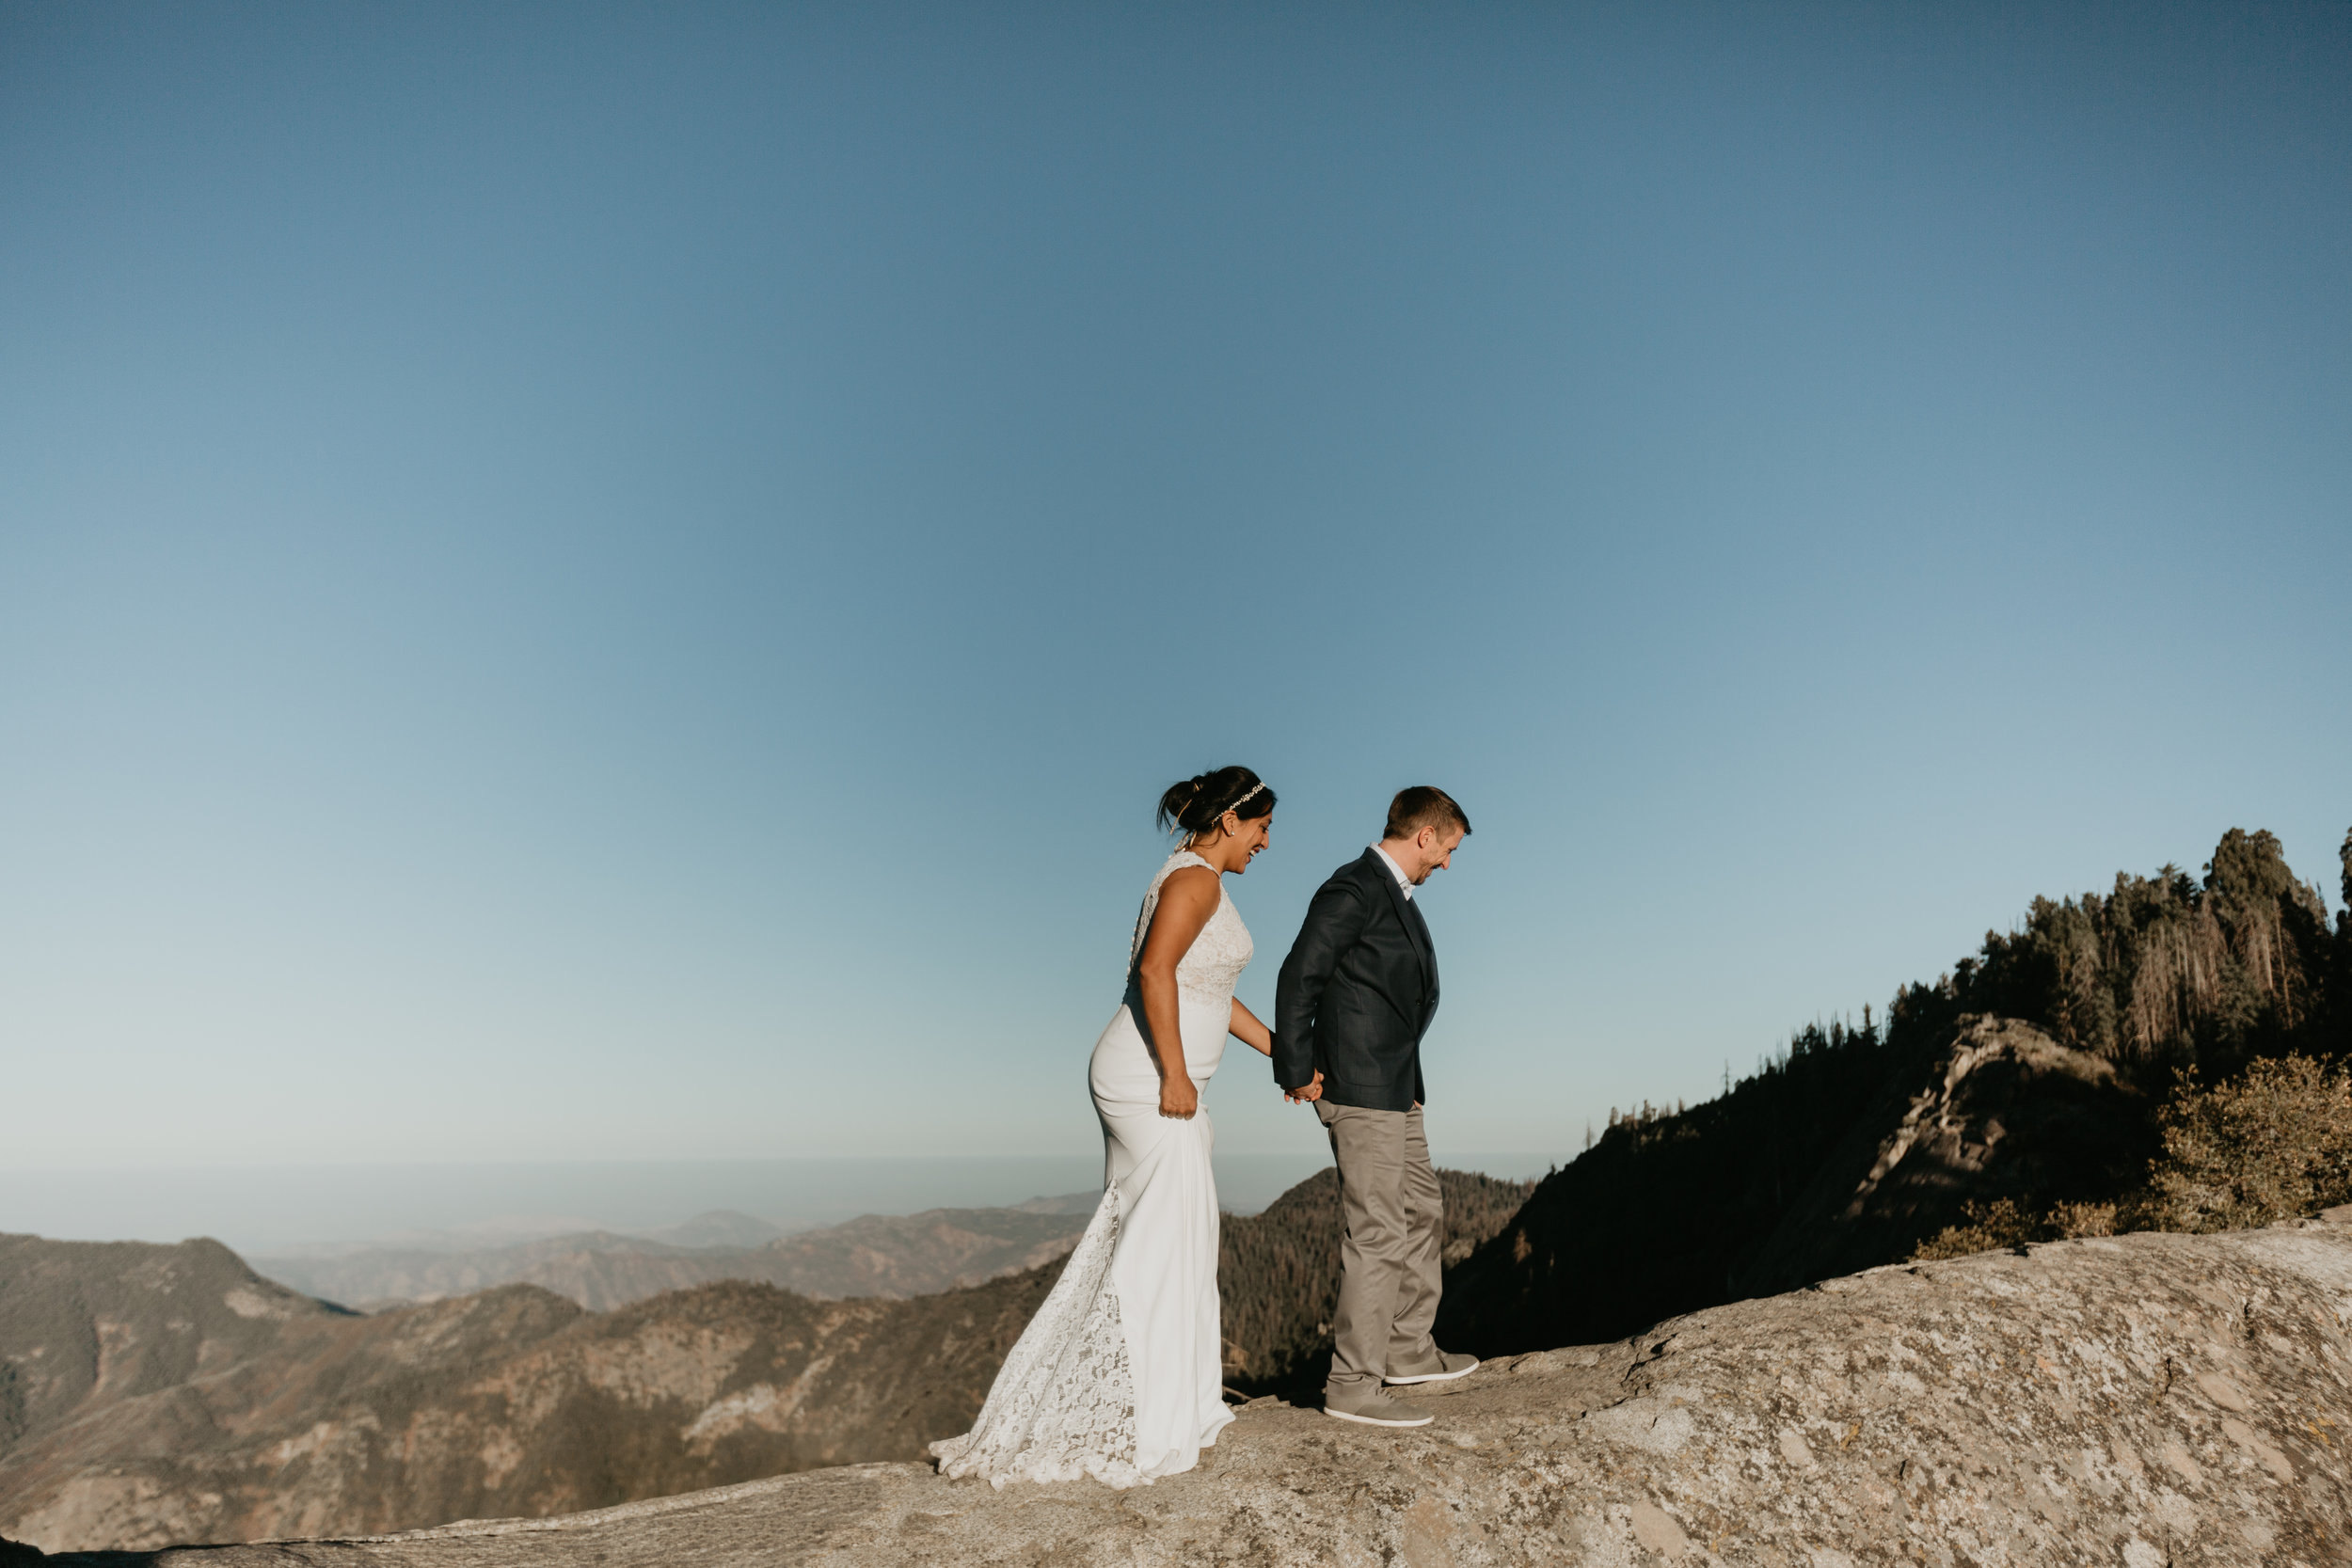 nicole-daacke-photography-sequoia-national-park-adventurous-elopement-sequoia-elopement-photographer-redwoods-california-intimate-wedding-photographer-3.jpg